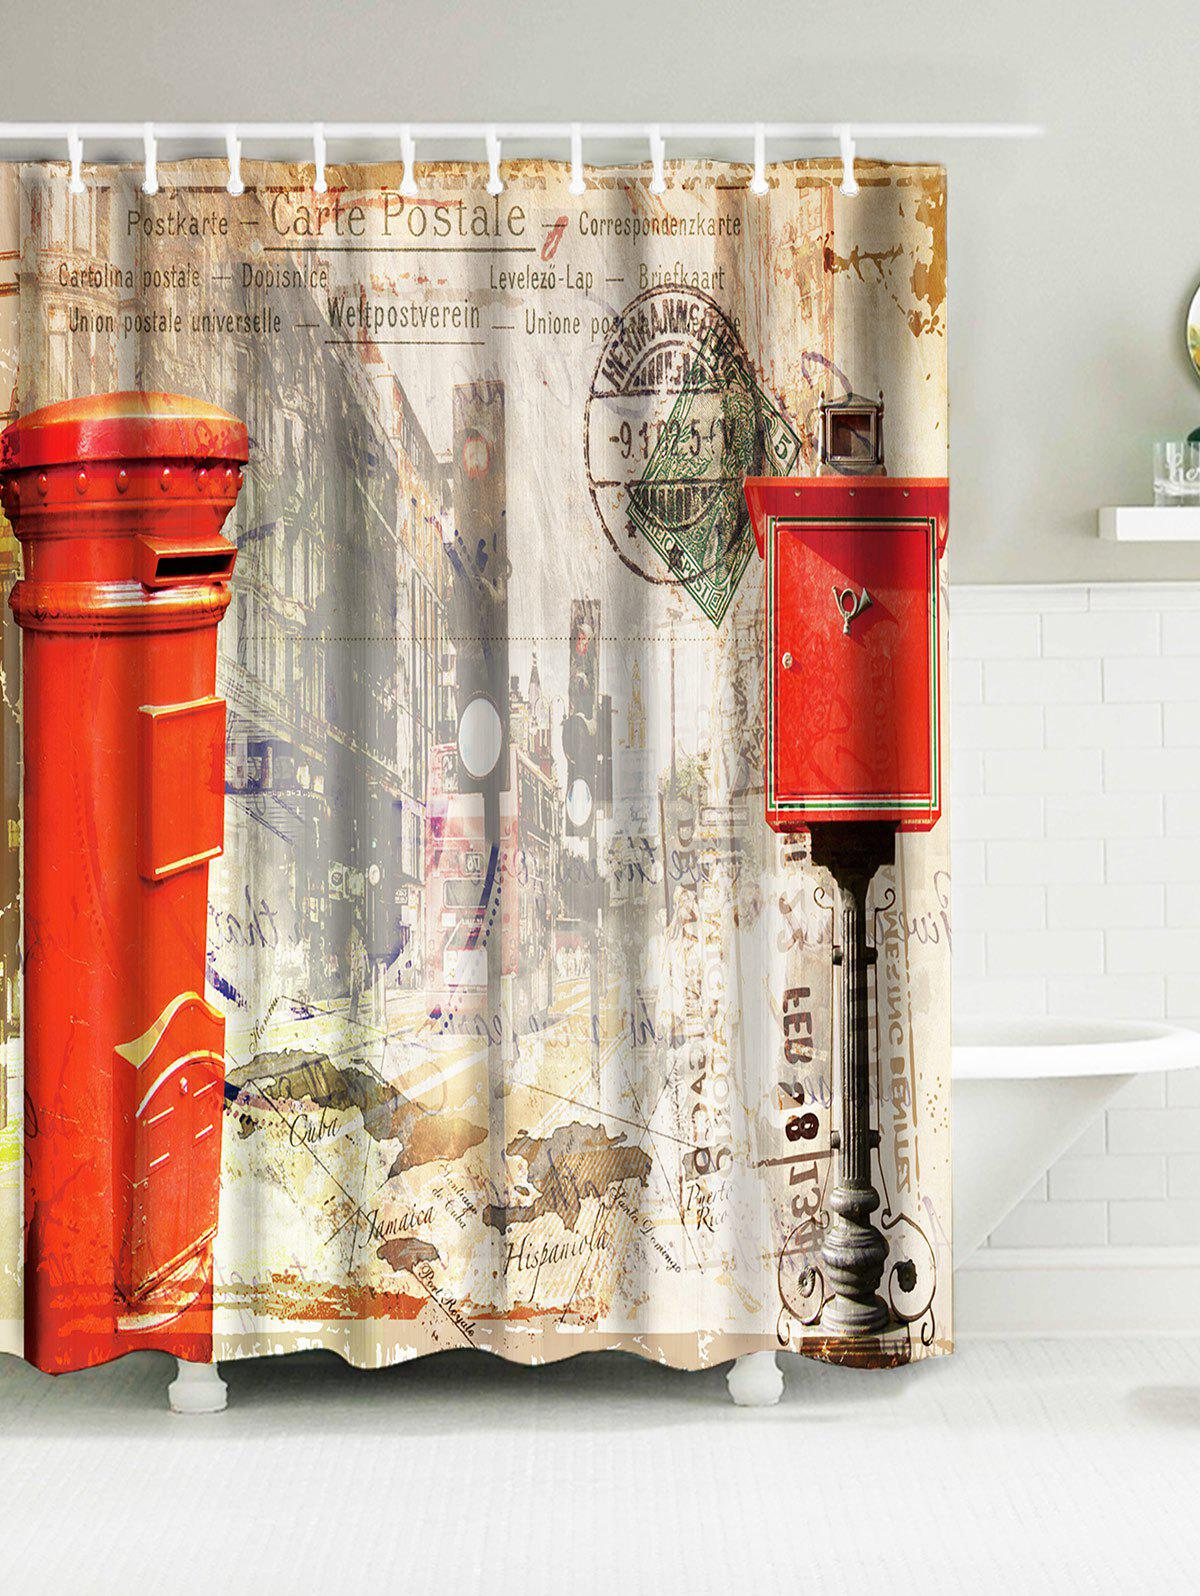 Vintage Mailbox Building Waterproof Fabric Shower Curtain vintage wood grain bark waterproof shower curtain